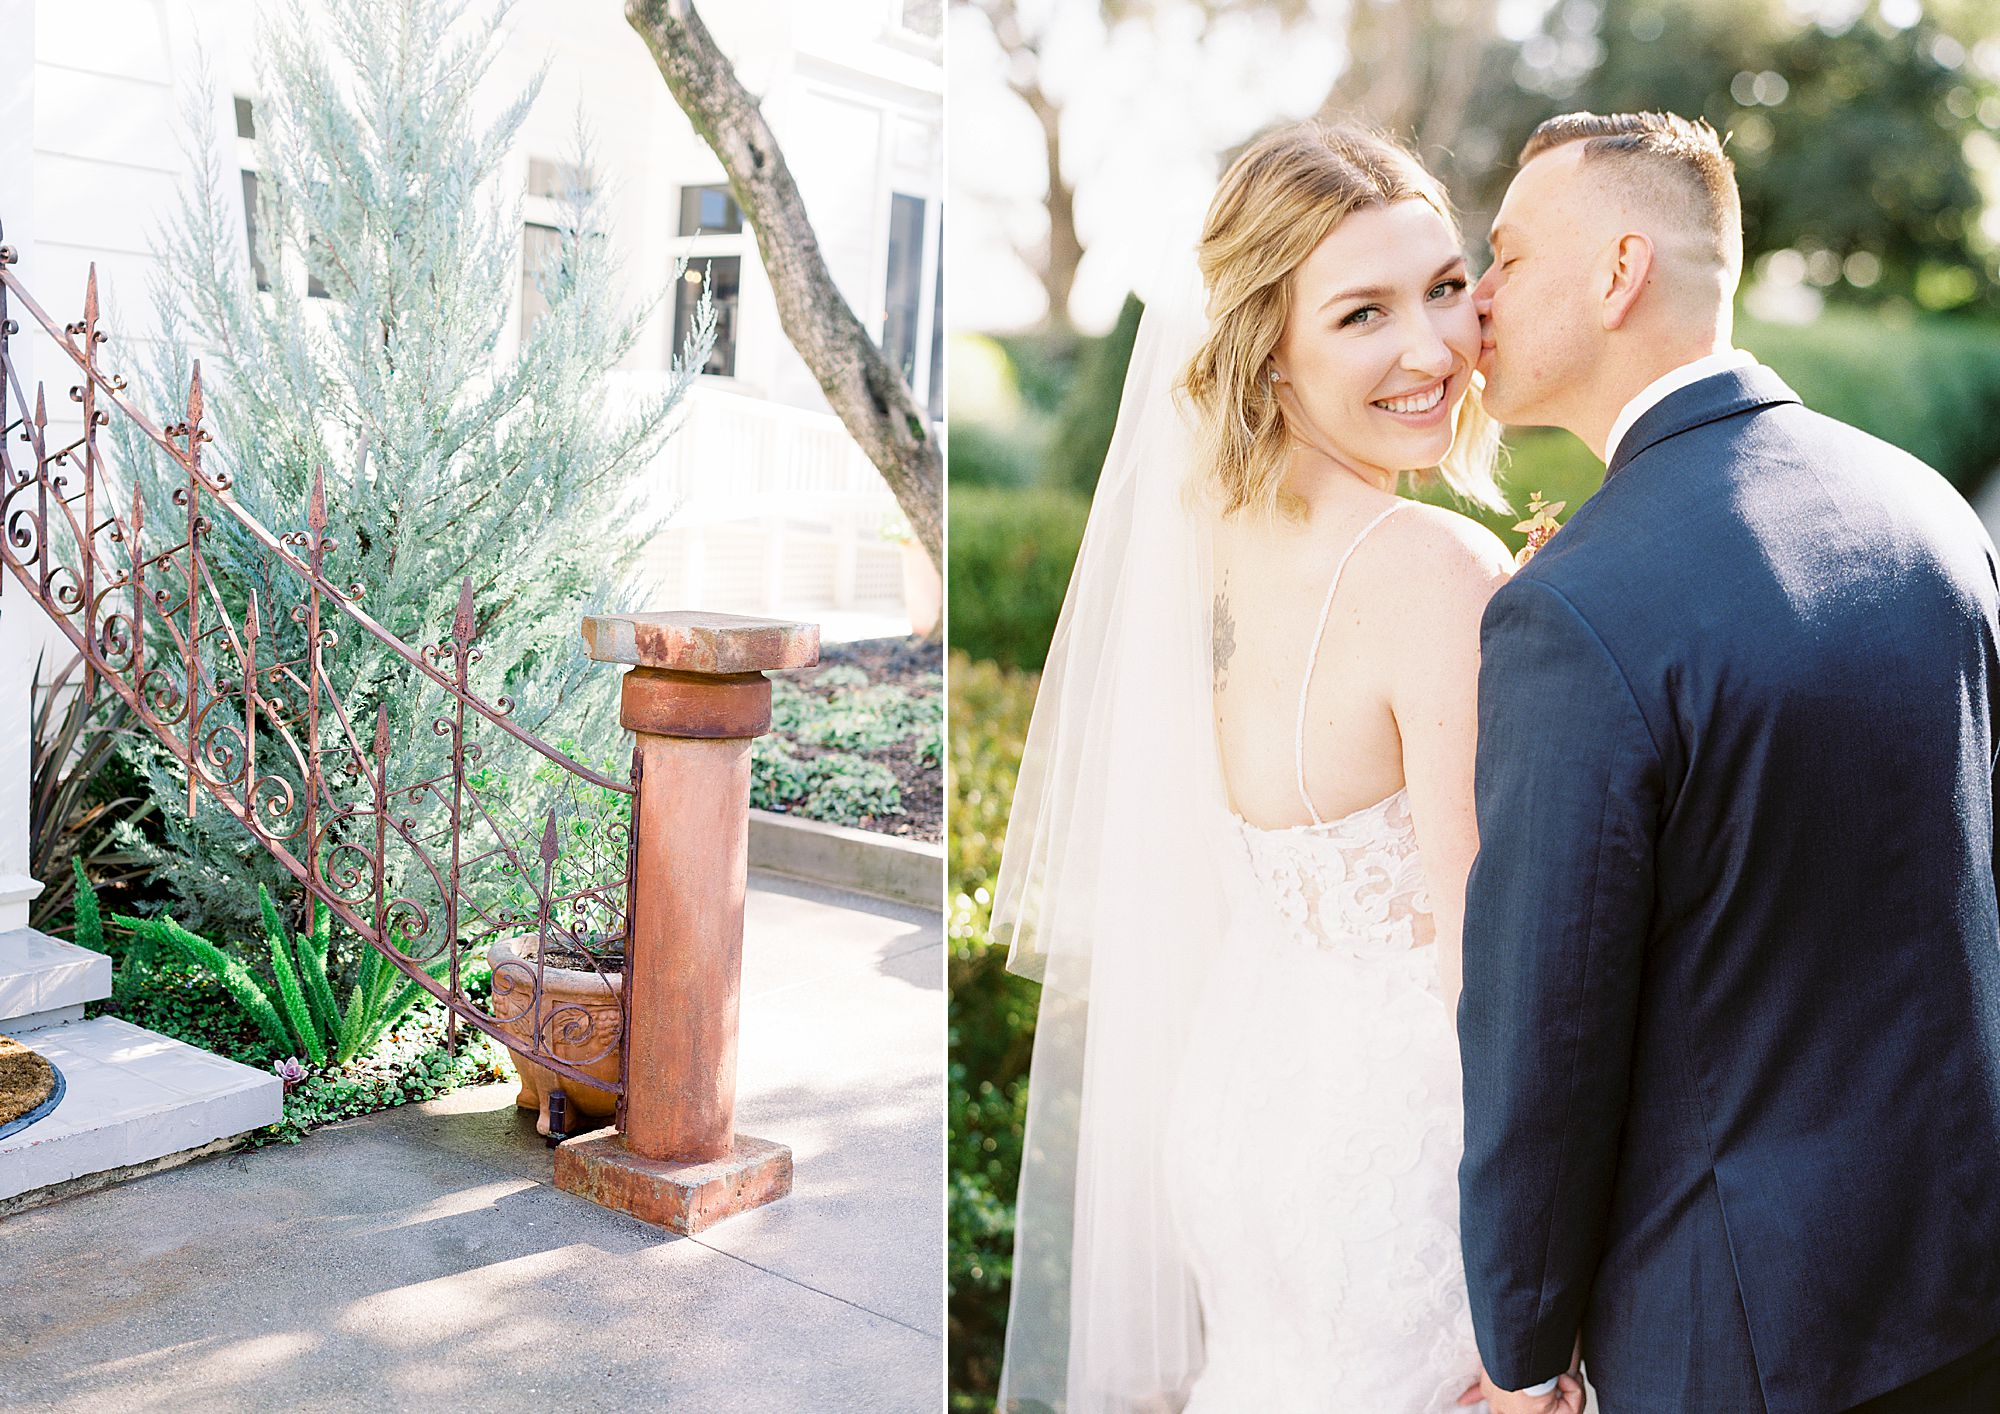 Inn at Park Winters Wedding - Lindsay and Shane - Ashley Baumgartner - Park Winters Wedding Photographer - Sacramento Wedding Photographer_0029.jpg